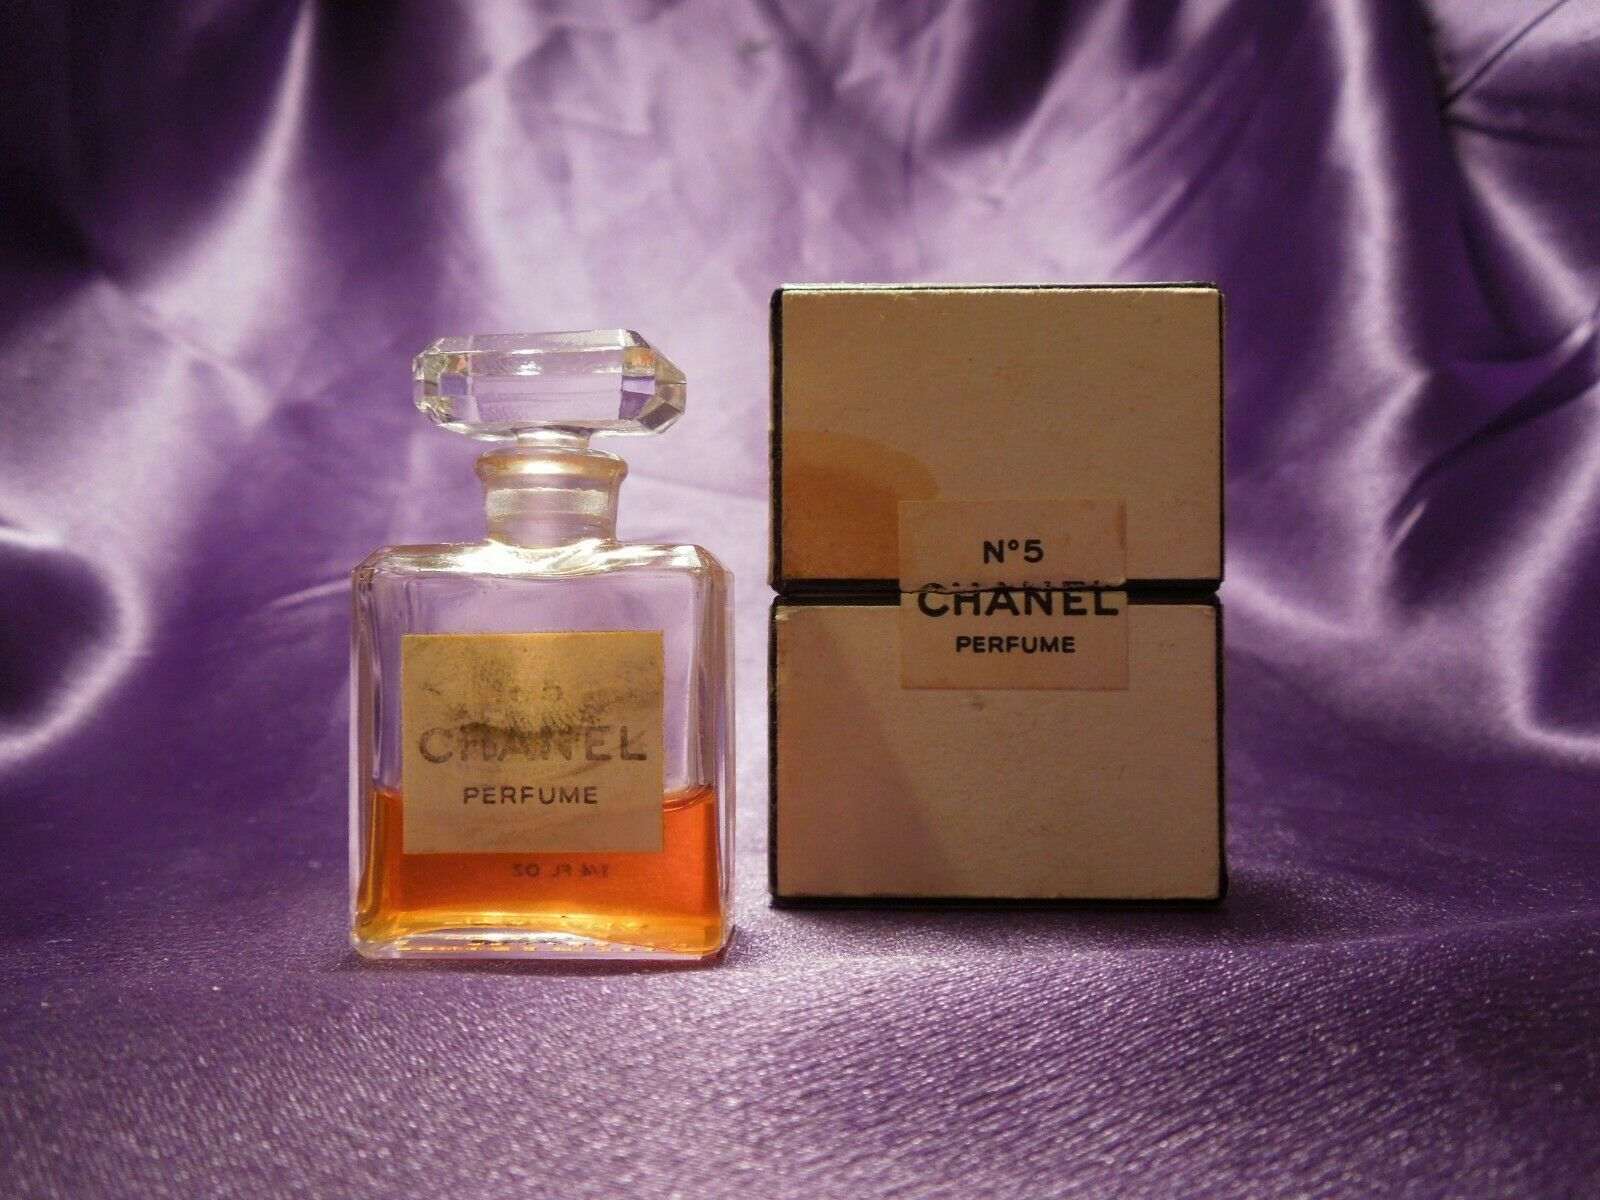 Vintage No. 5 Chanel Perfume 1/4 fl oz Bottle w/ Box Size 9